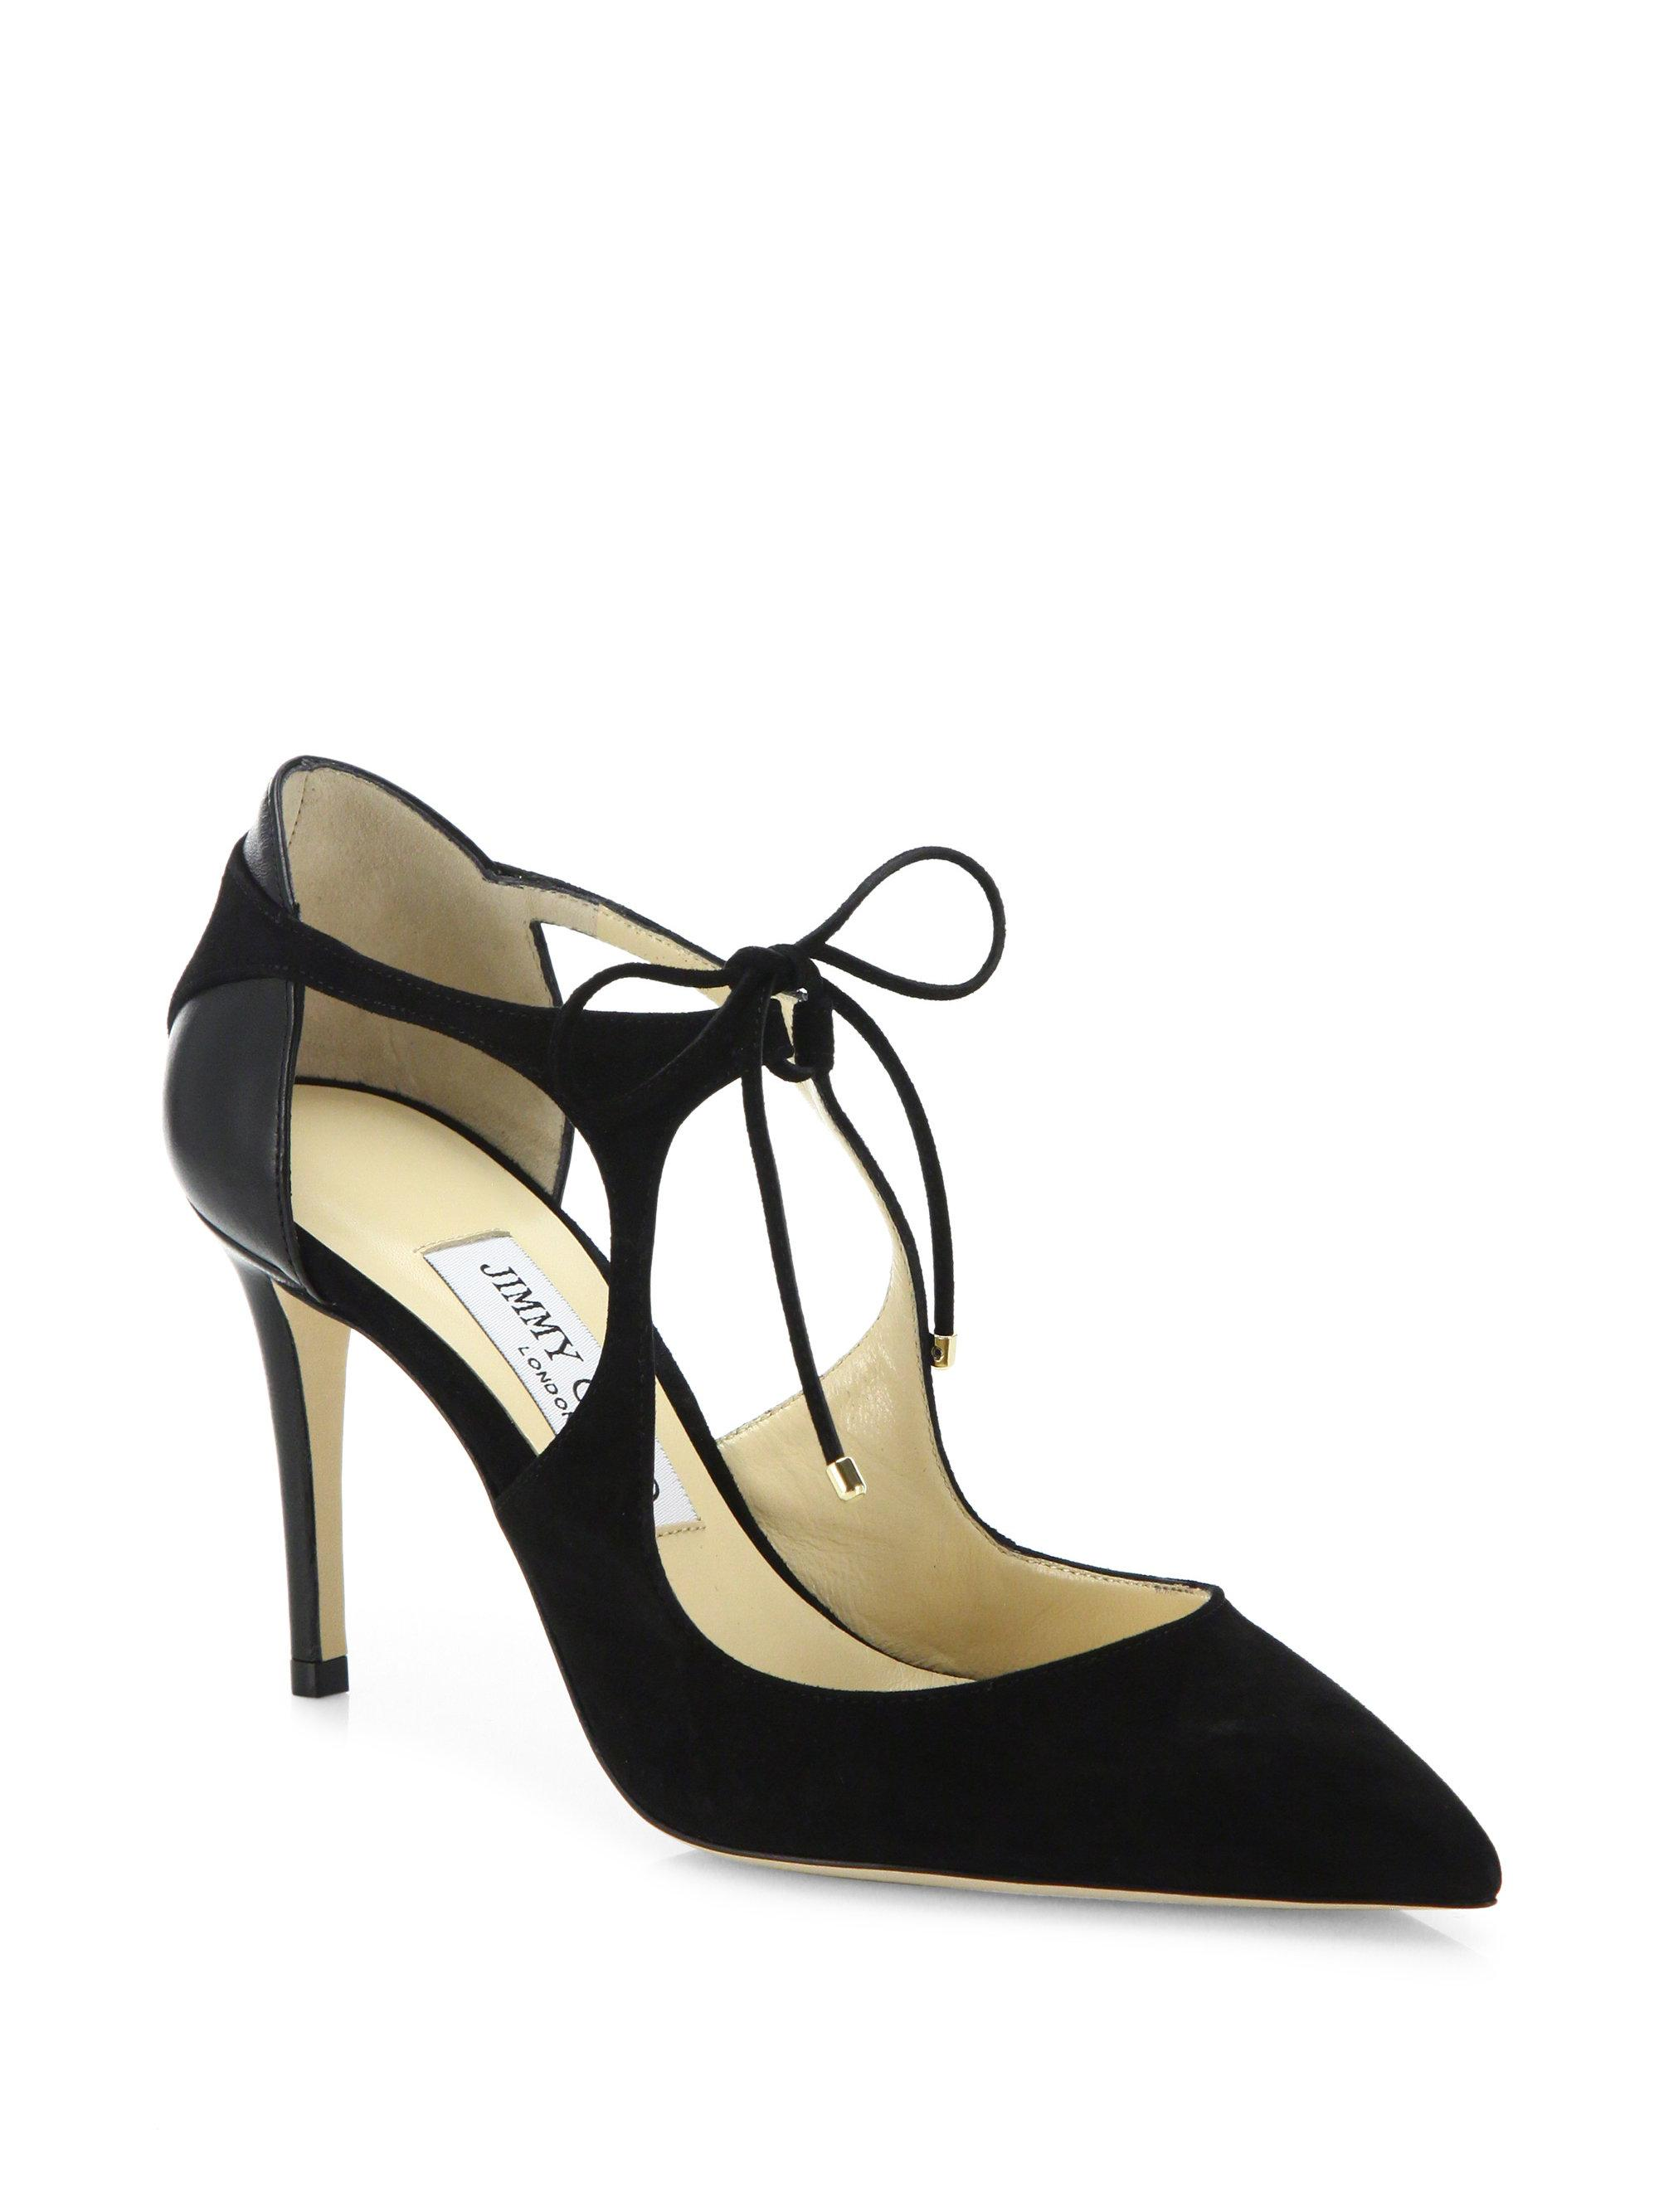 Vanessa 100 Suede Tie Up Pumps in Black Suede and Nappa Jimmy Choo London xwq2NZDz